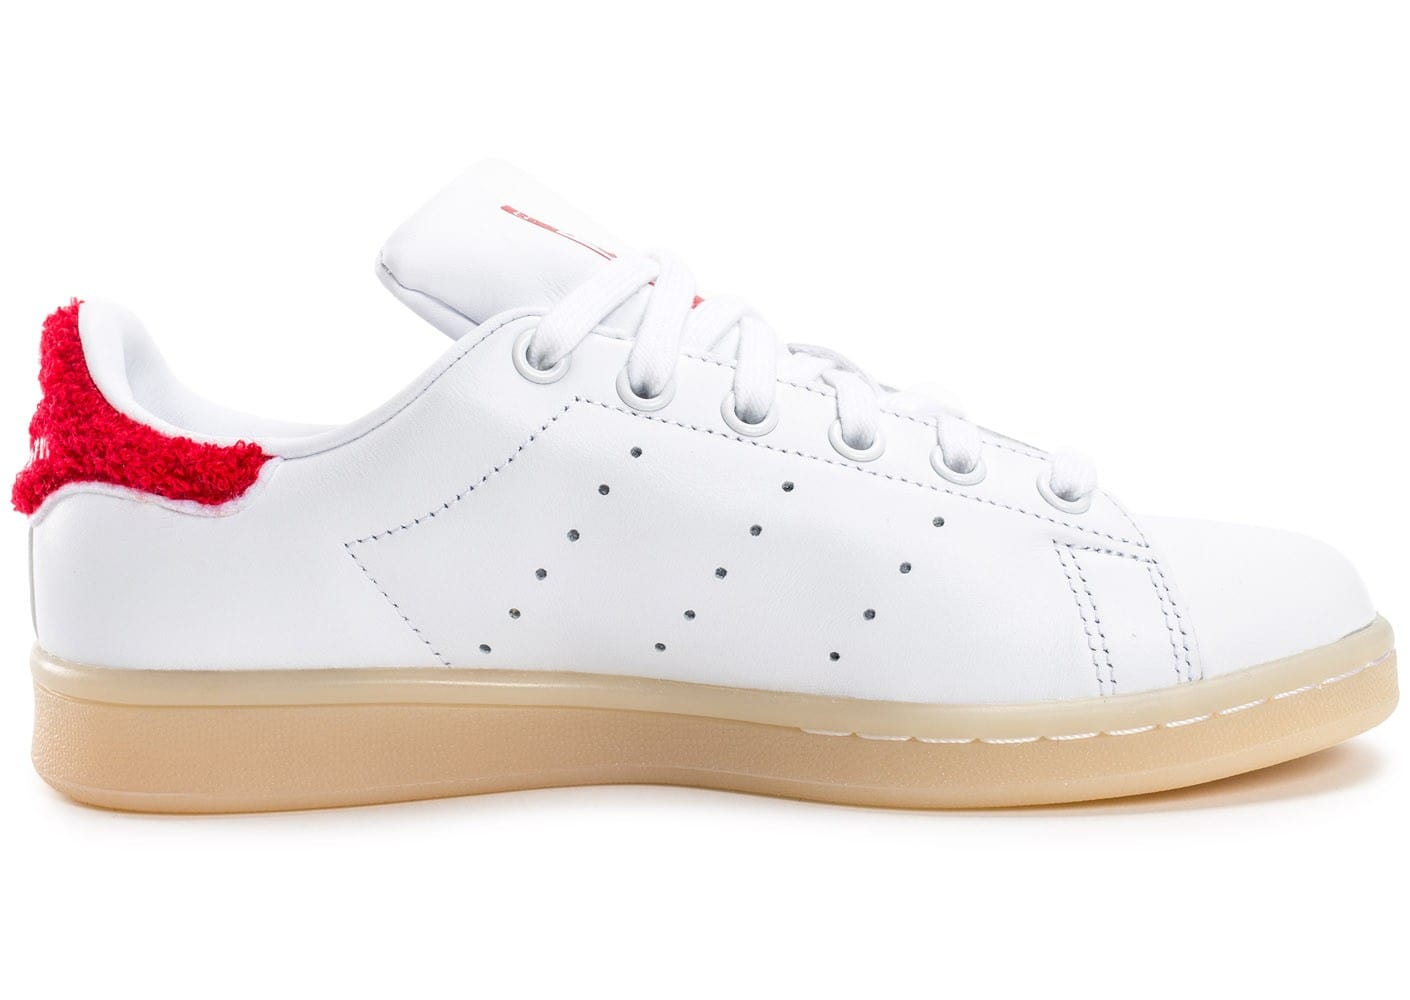 adidas Stan Smith Wool blanche et rouge - Chaussures adidas - Chausport cfef99700254